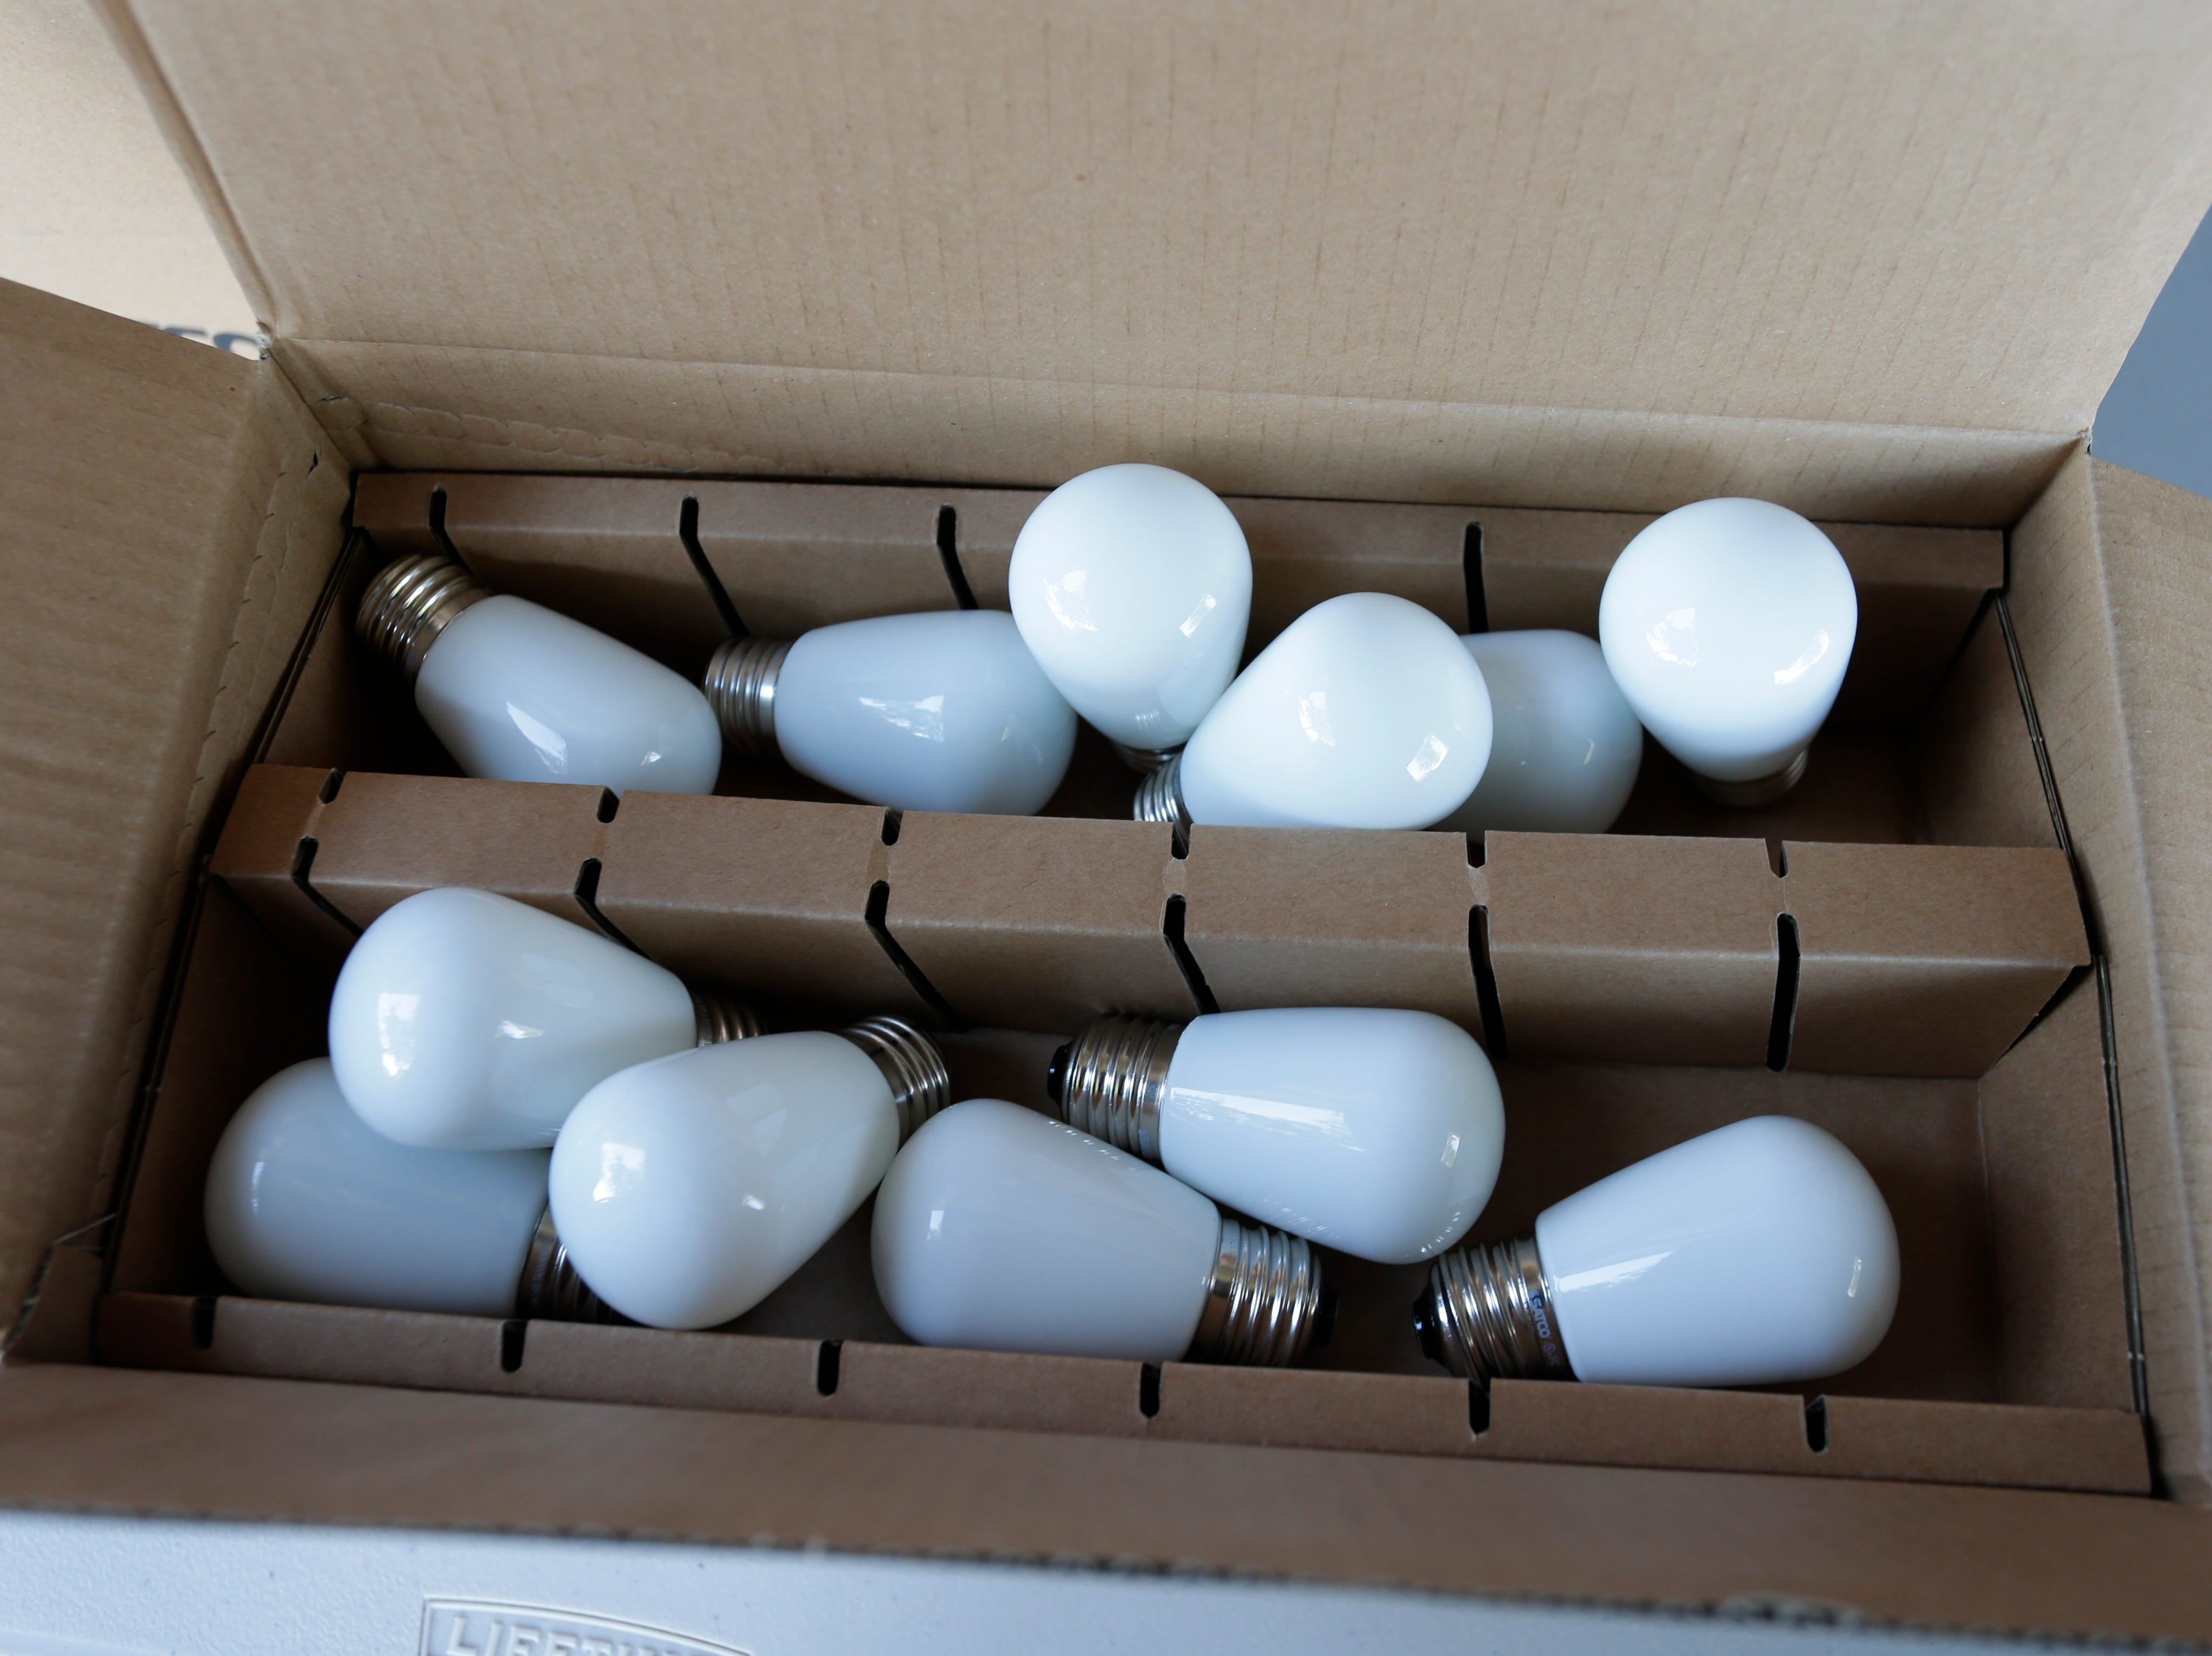 New LED bulbs, that look identical to the incandescent bulbs they replace at the Stefanie H. Weill Center for the Performing Arts, Sunday, September 23, 2018, in Sheboygan, Wis.